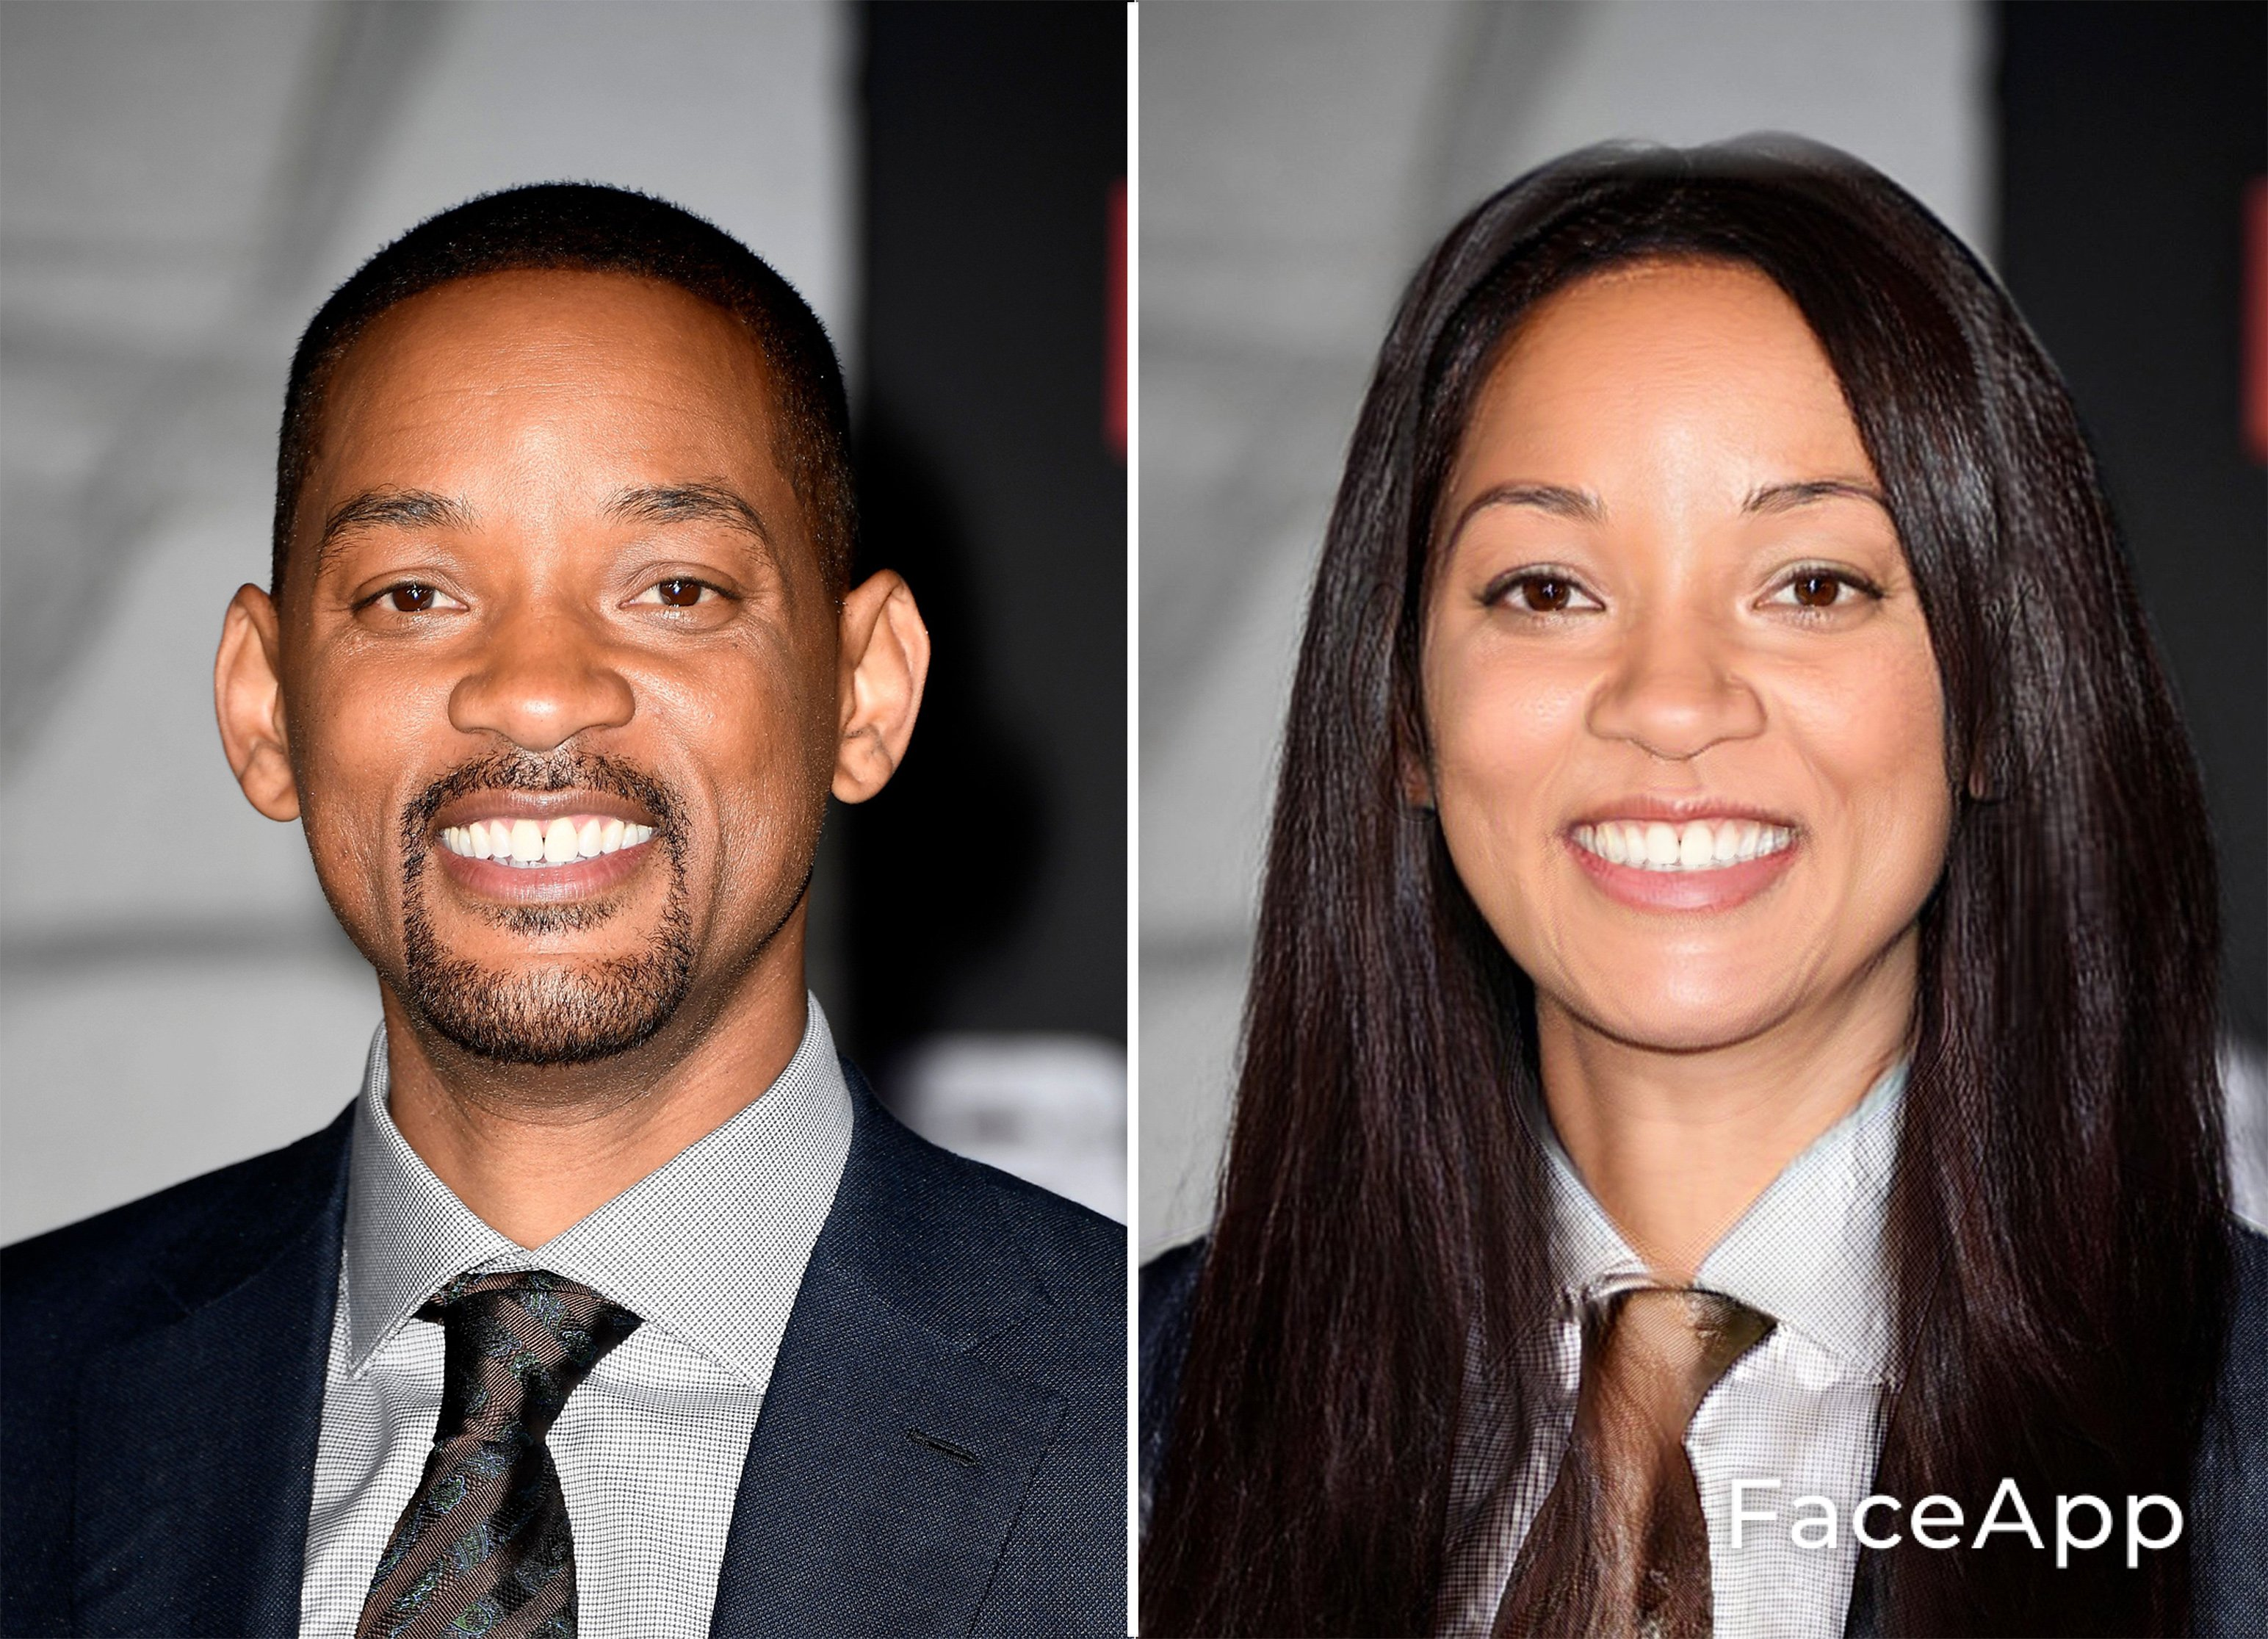 Will Smith| Source: Getty Images/Face App